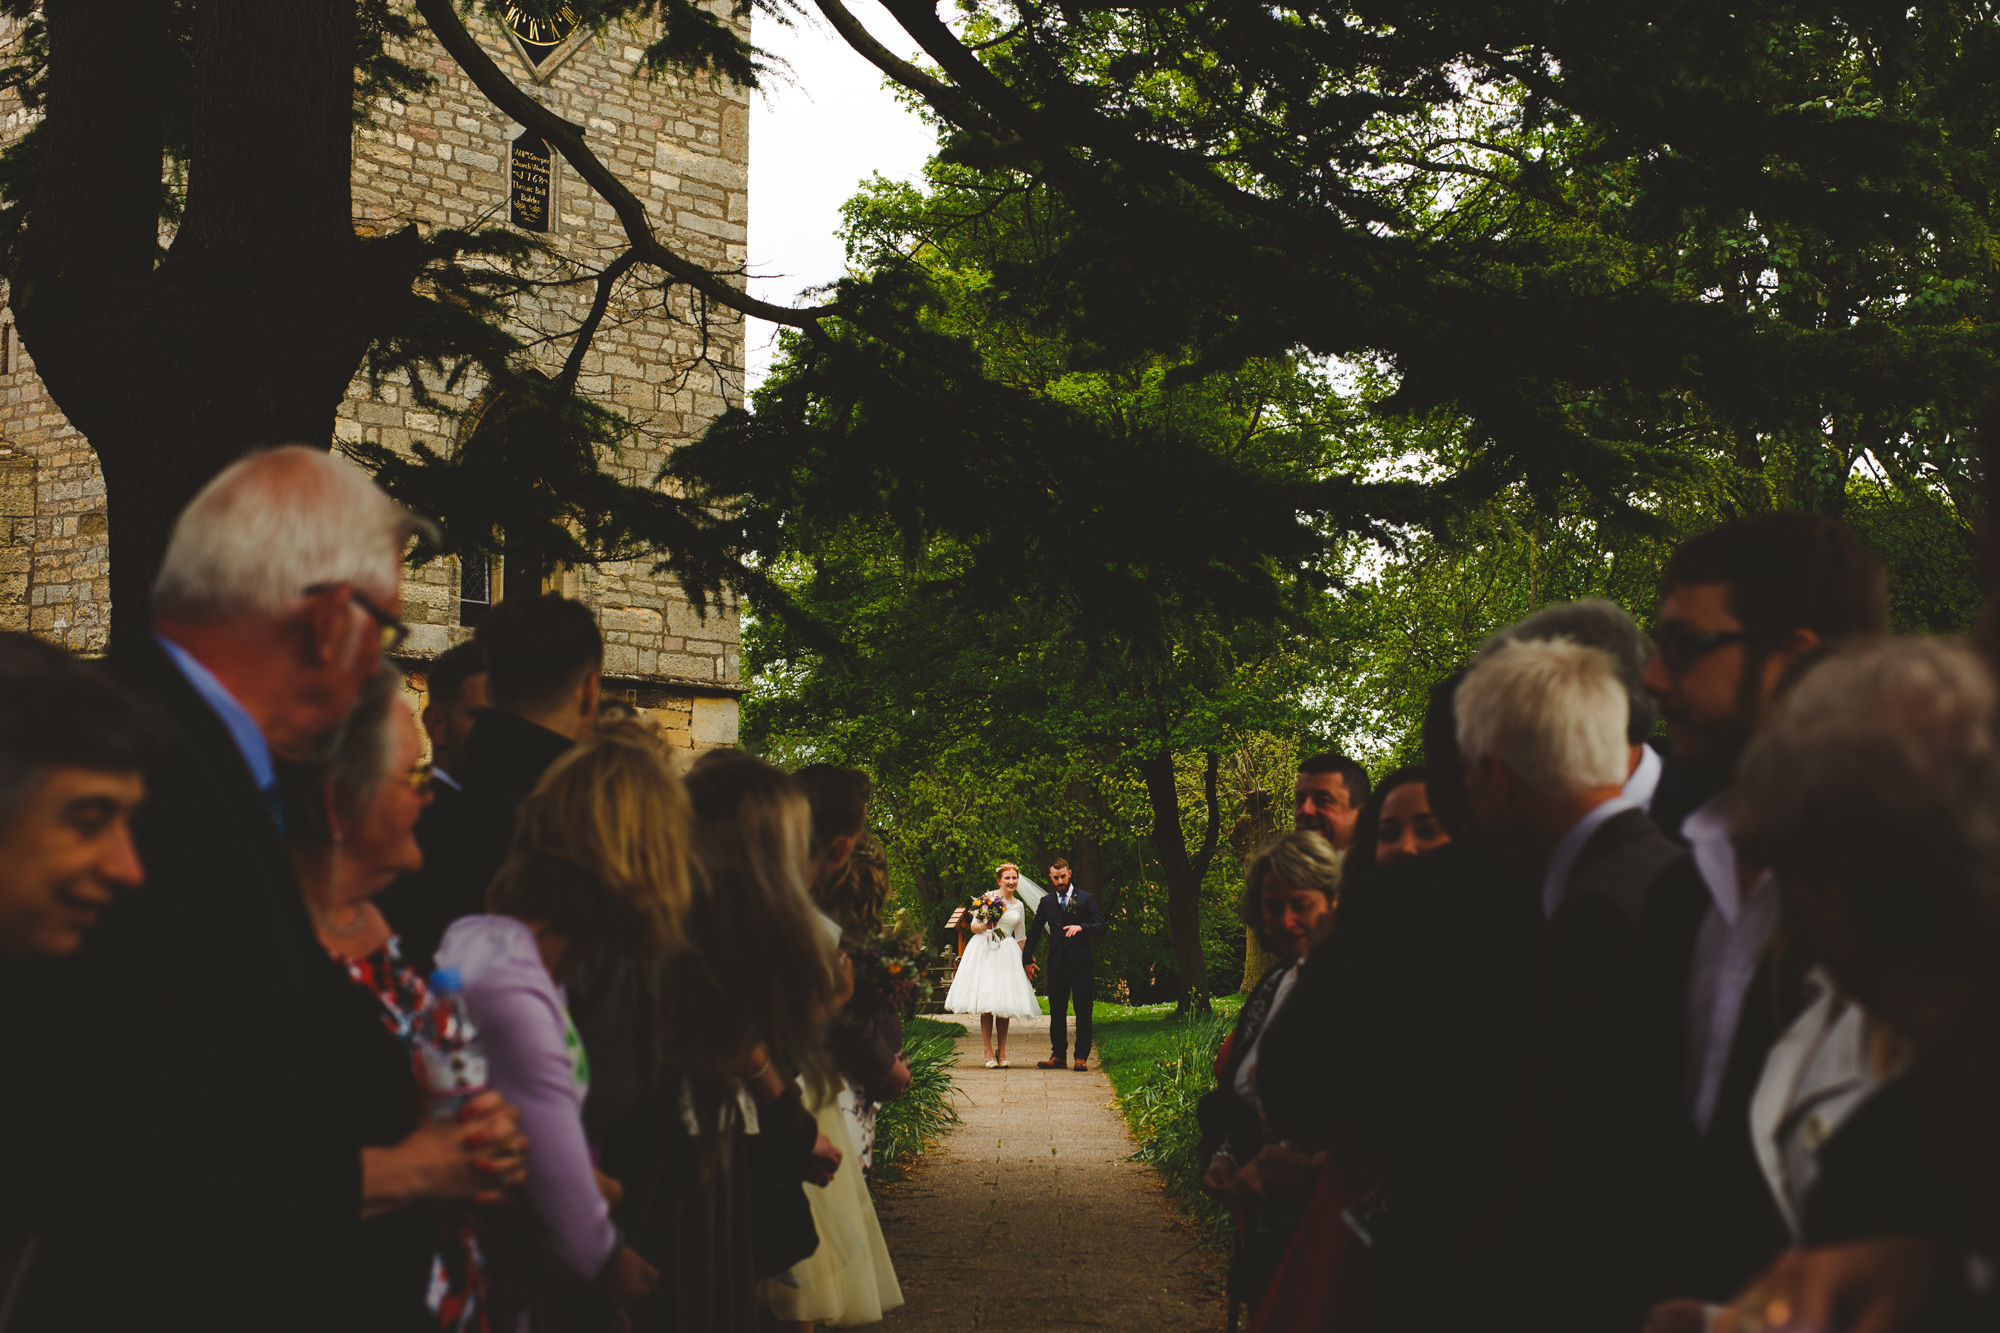 creative-informal-wedding-photographer-uk-camera-hannah-6.jpg